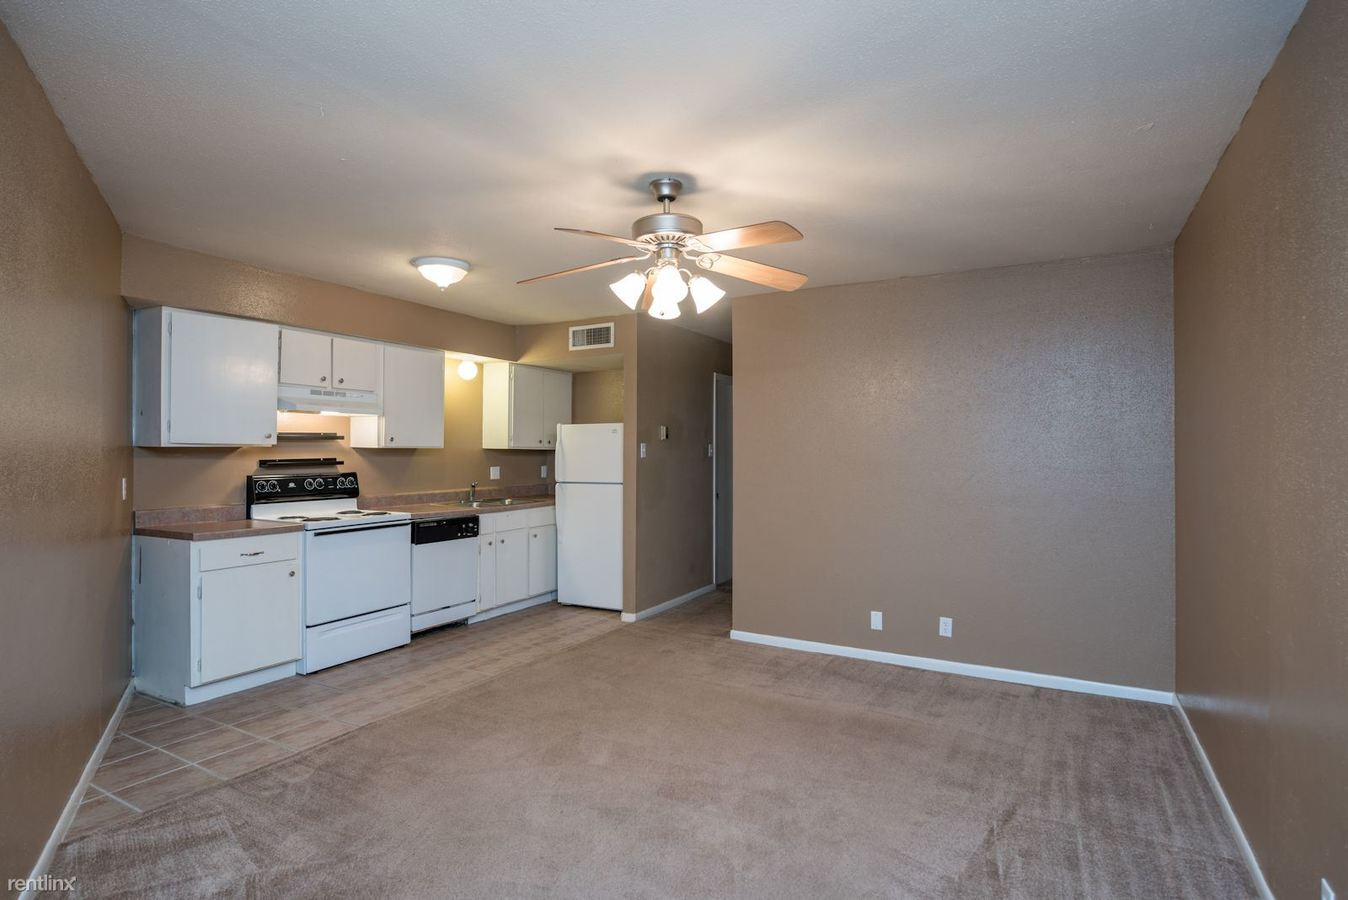 2 Bedrooms 1 Bathroom Apartment for rent at Academic Village in Bryan, TX